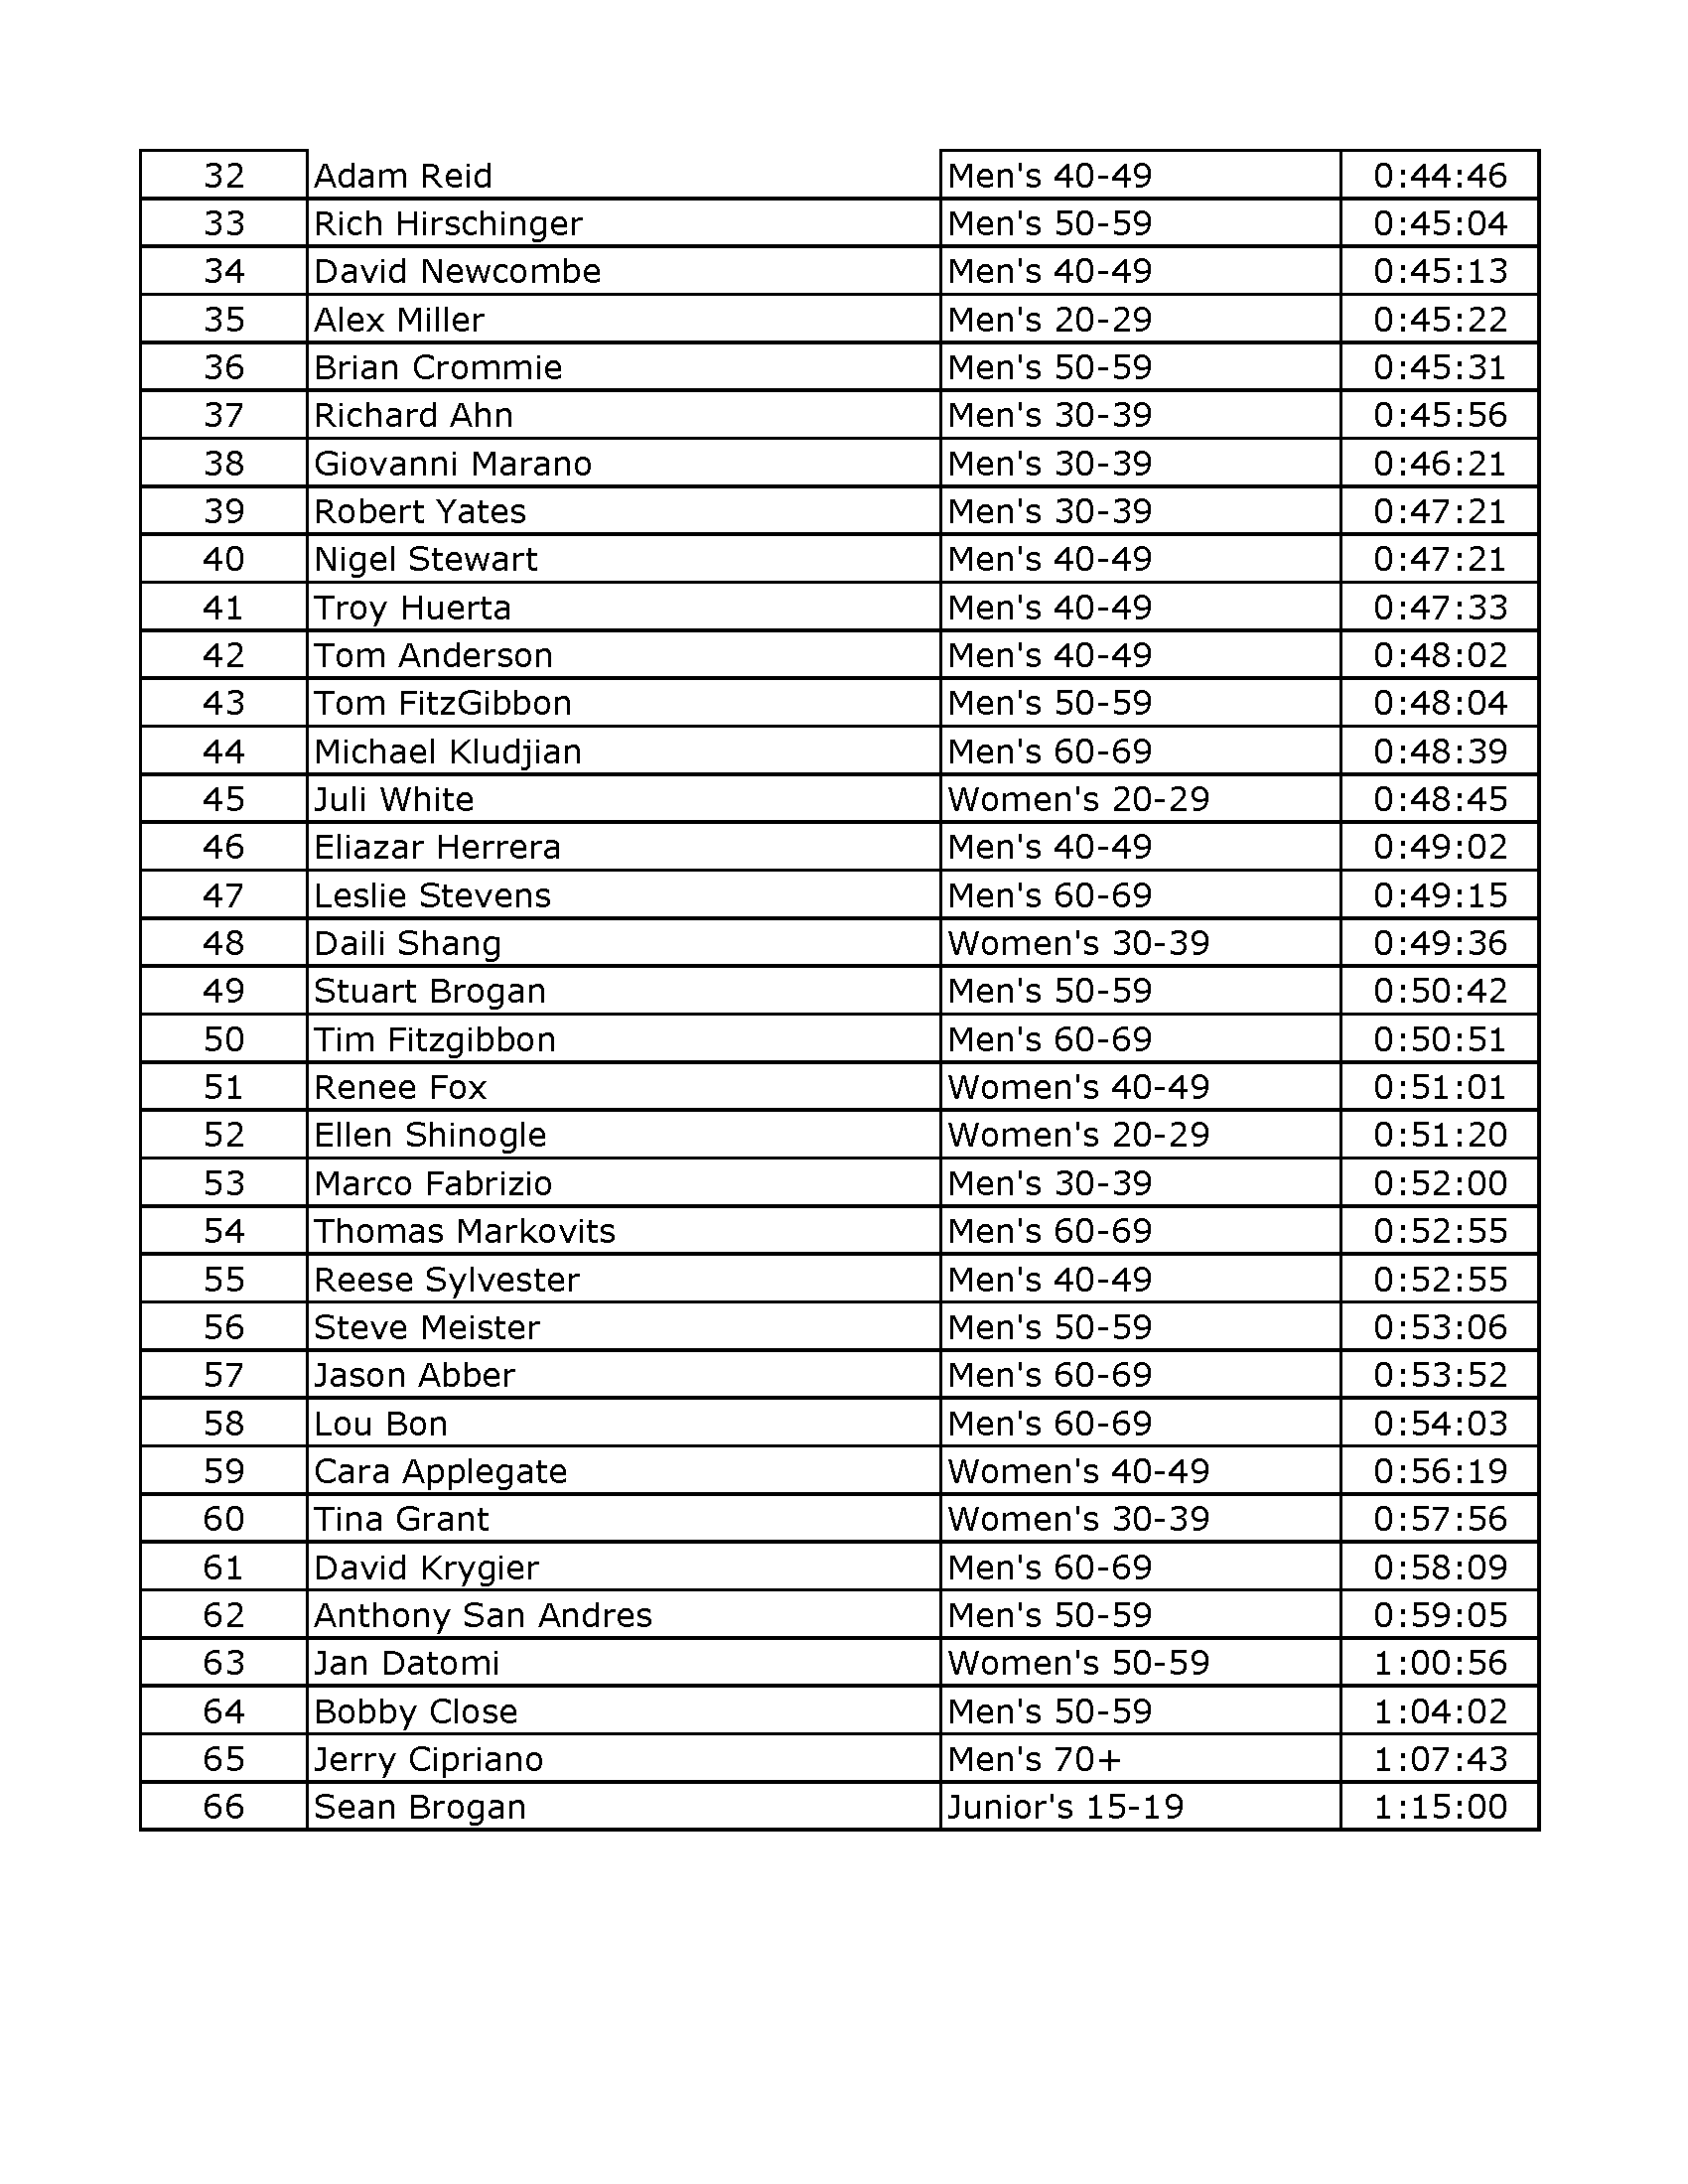 2018 Piuma results_Page_5.png